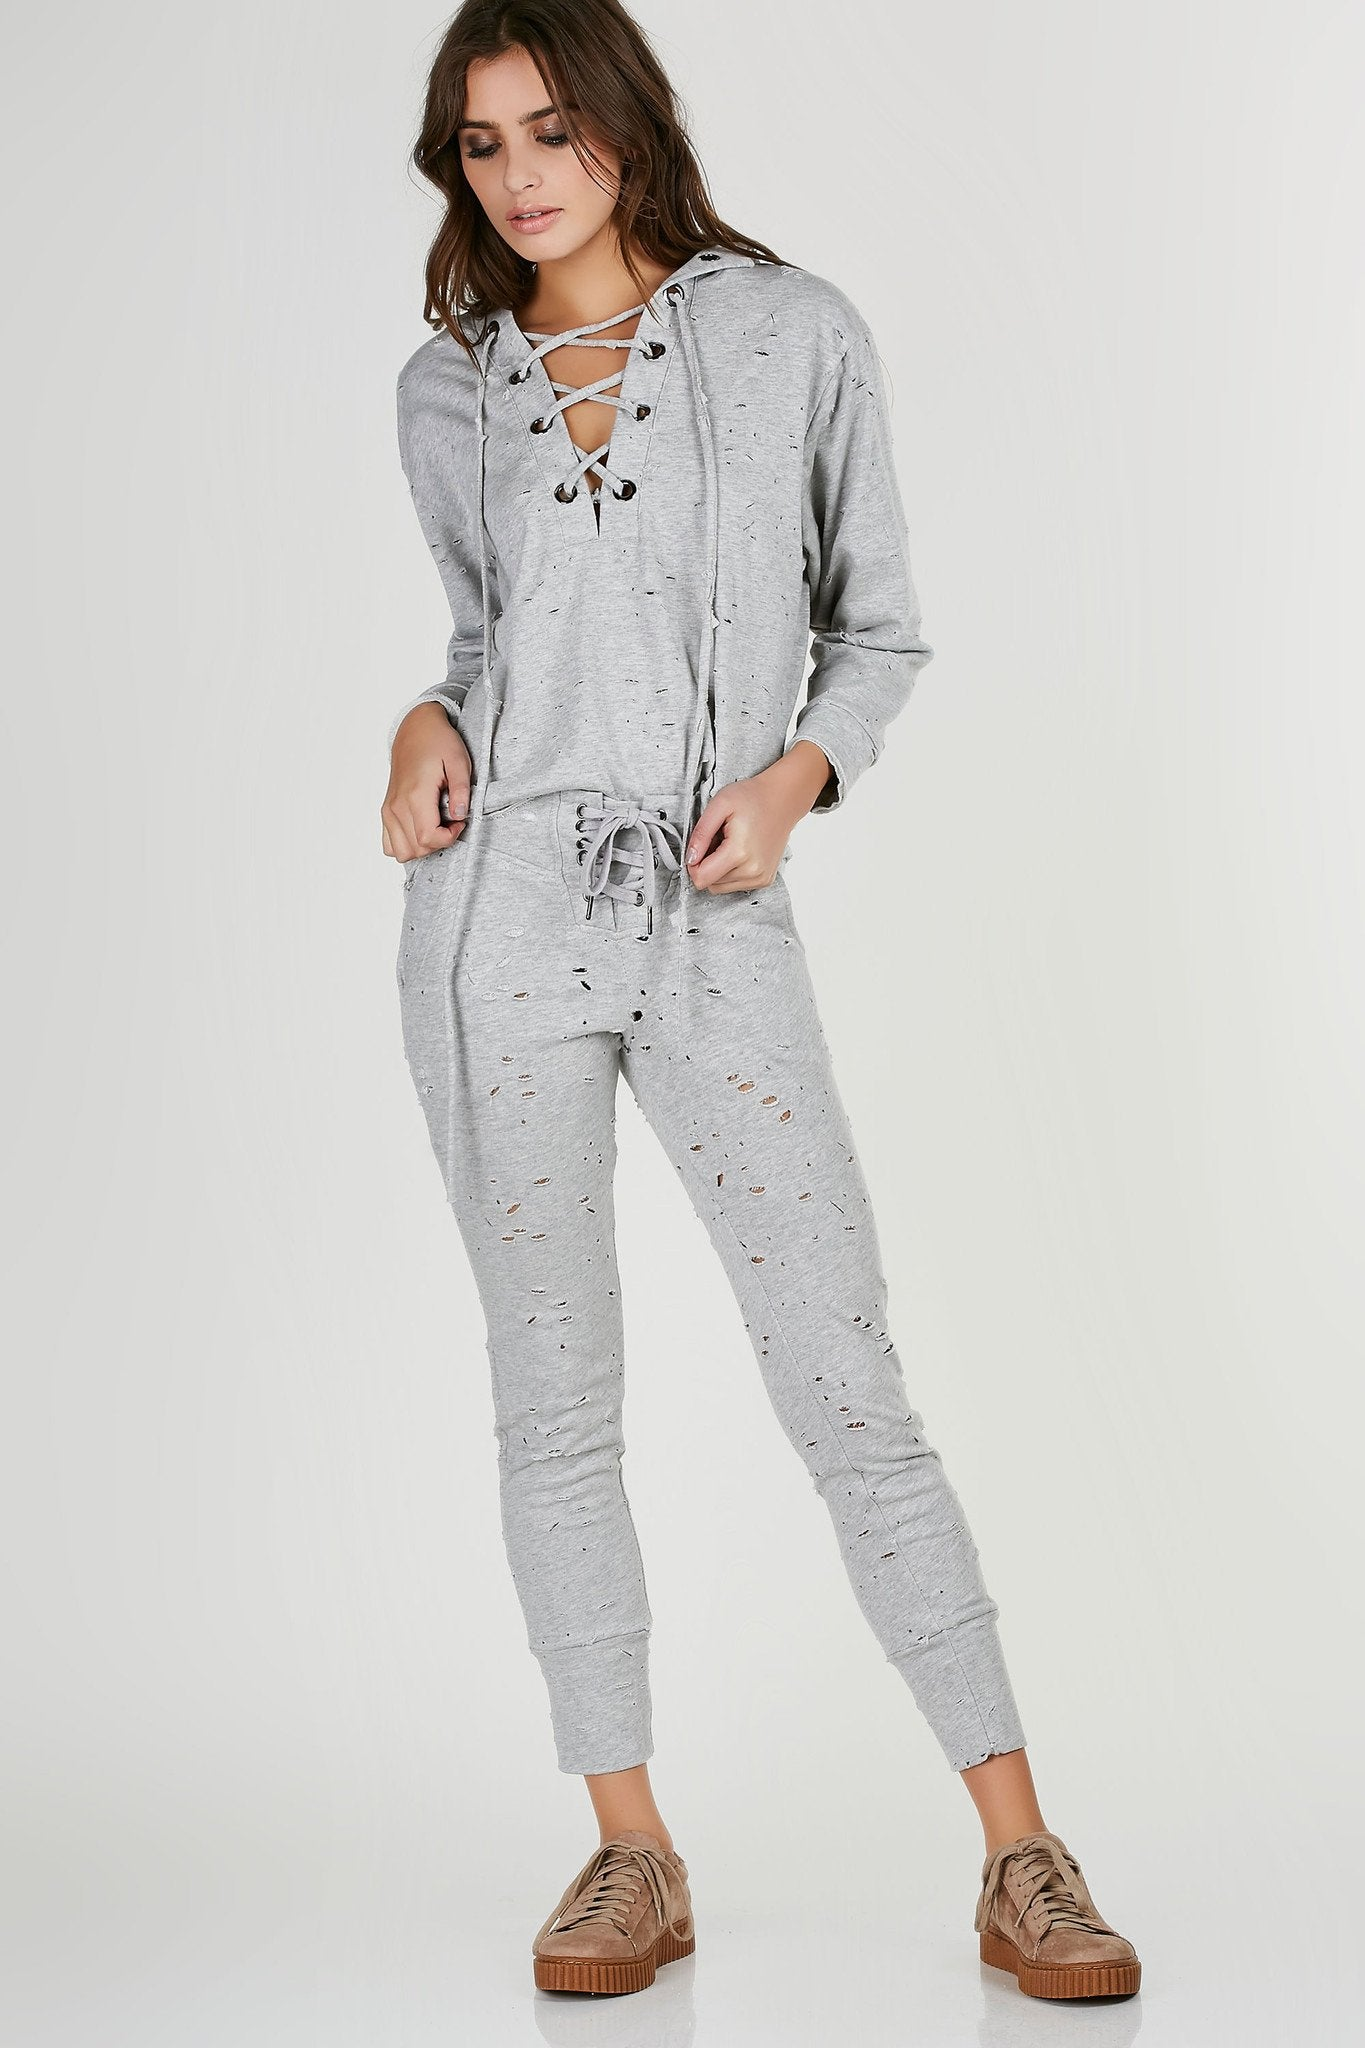 Mid rise sweatpants with trendy lace up detailing at waist. Distressed throughout with functional pockets. Comes in a set with matching top sold separately.